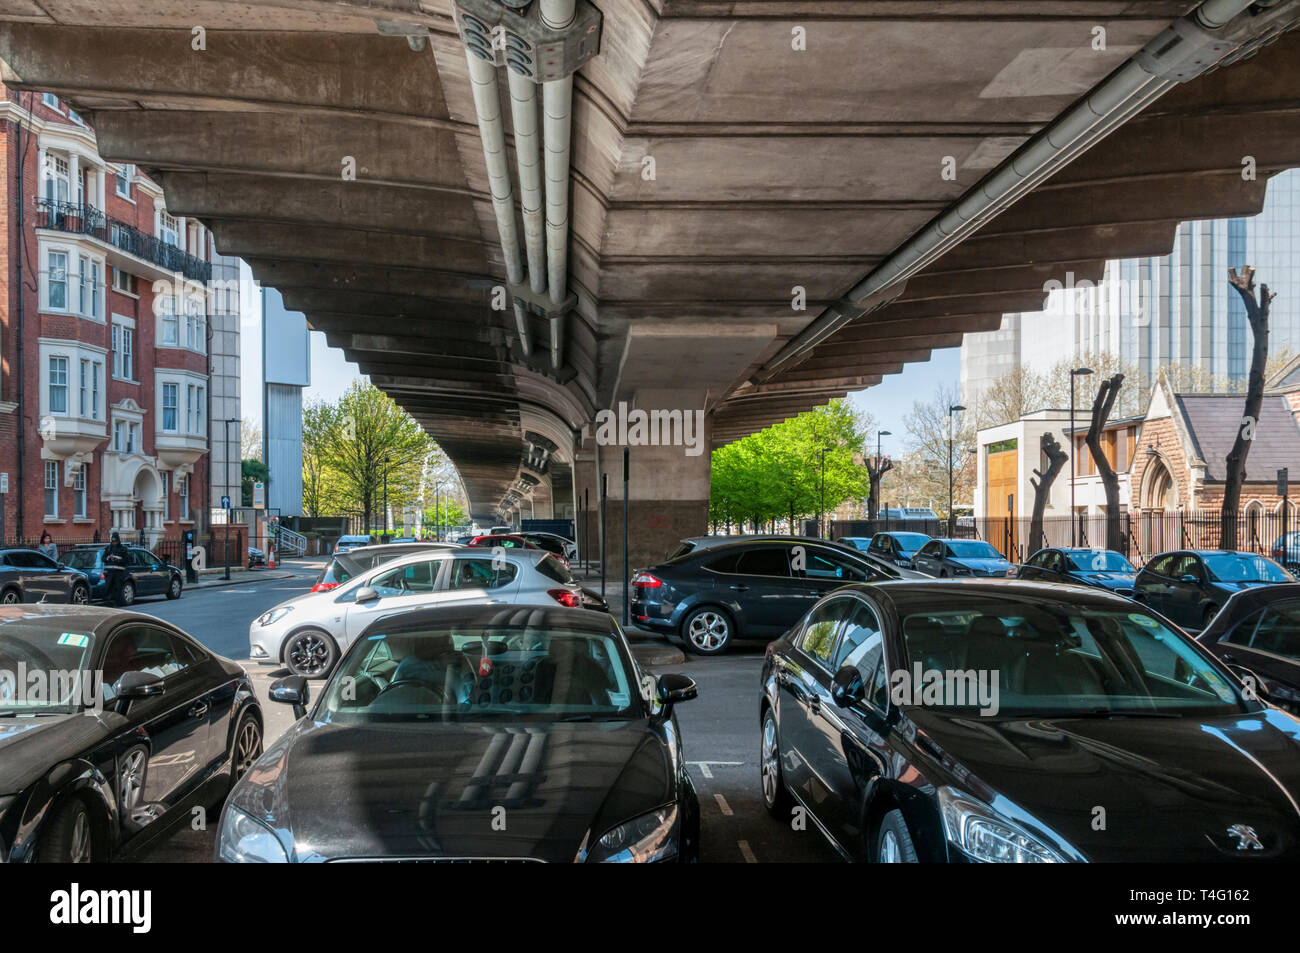 Cars parked under the Hammersmith Flyover. Built in 1960s, the flyover carries the A4 road in West London. - Stock Image